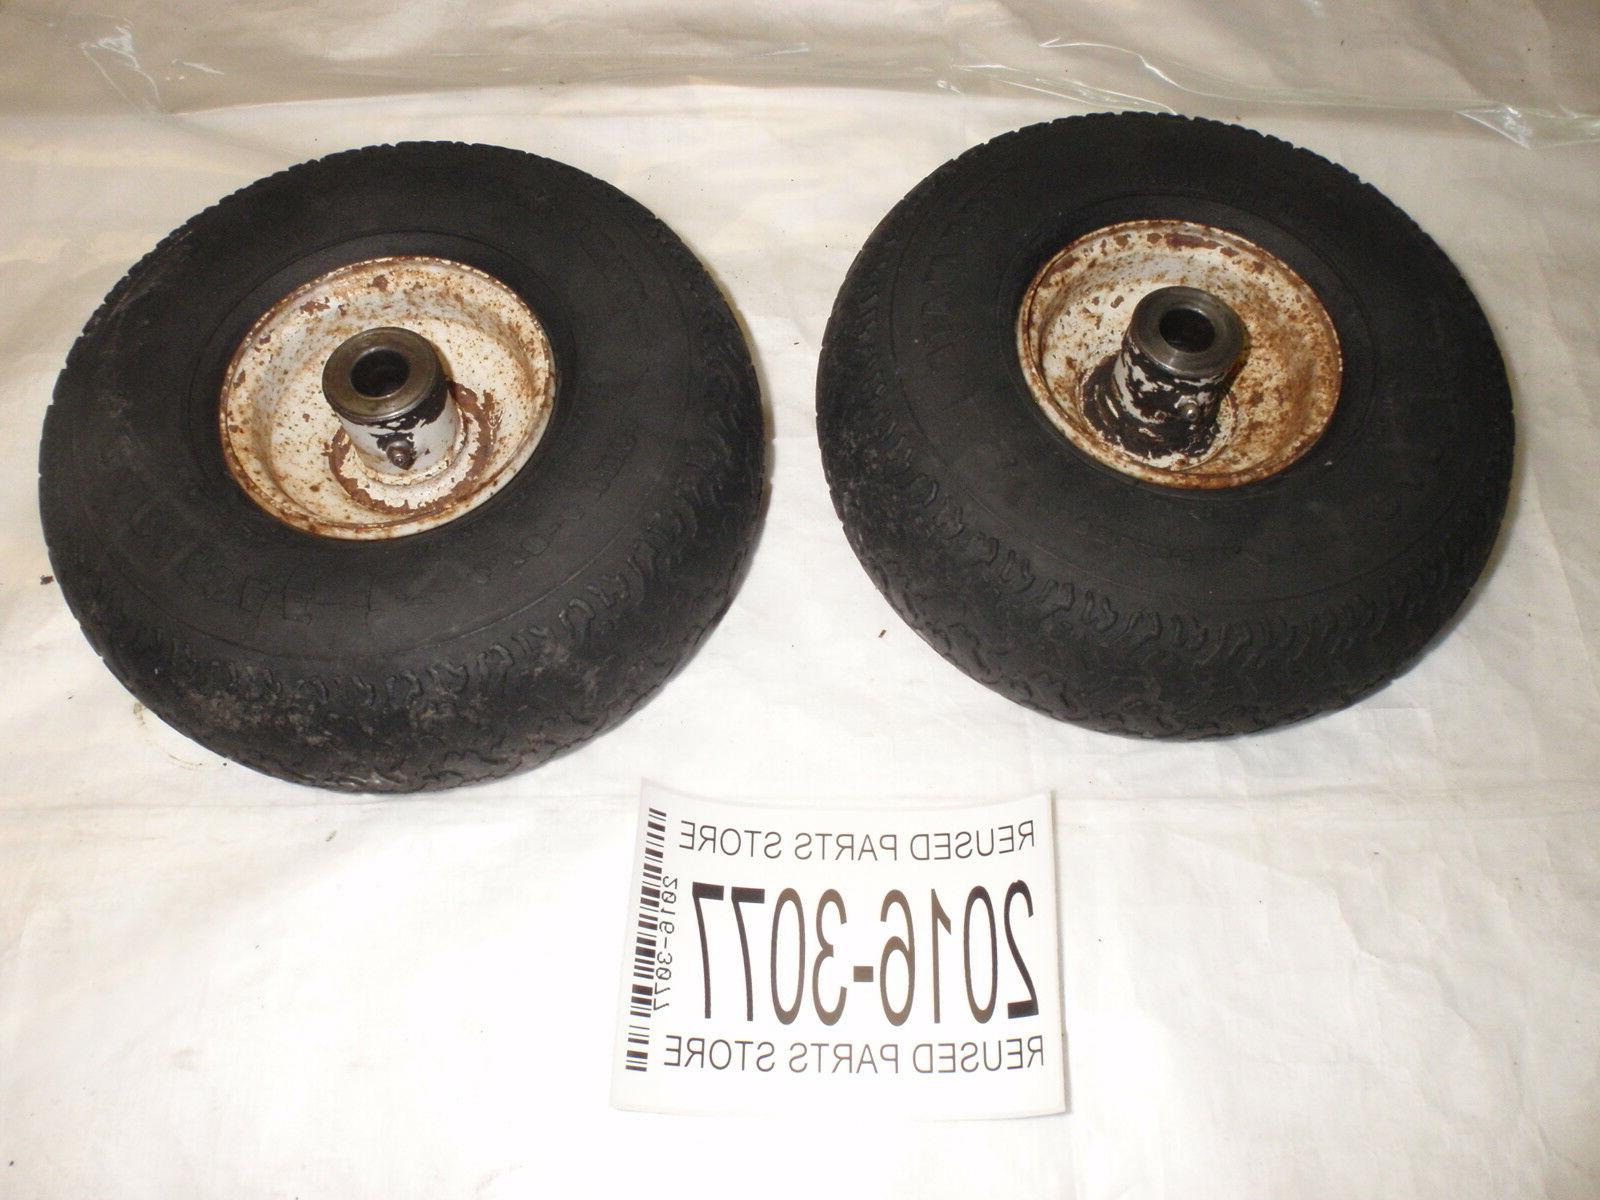 rm1230e rear engine lawn mower front tires